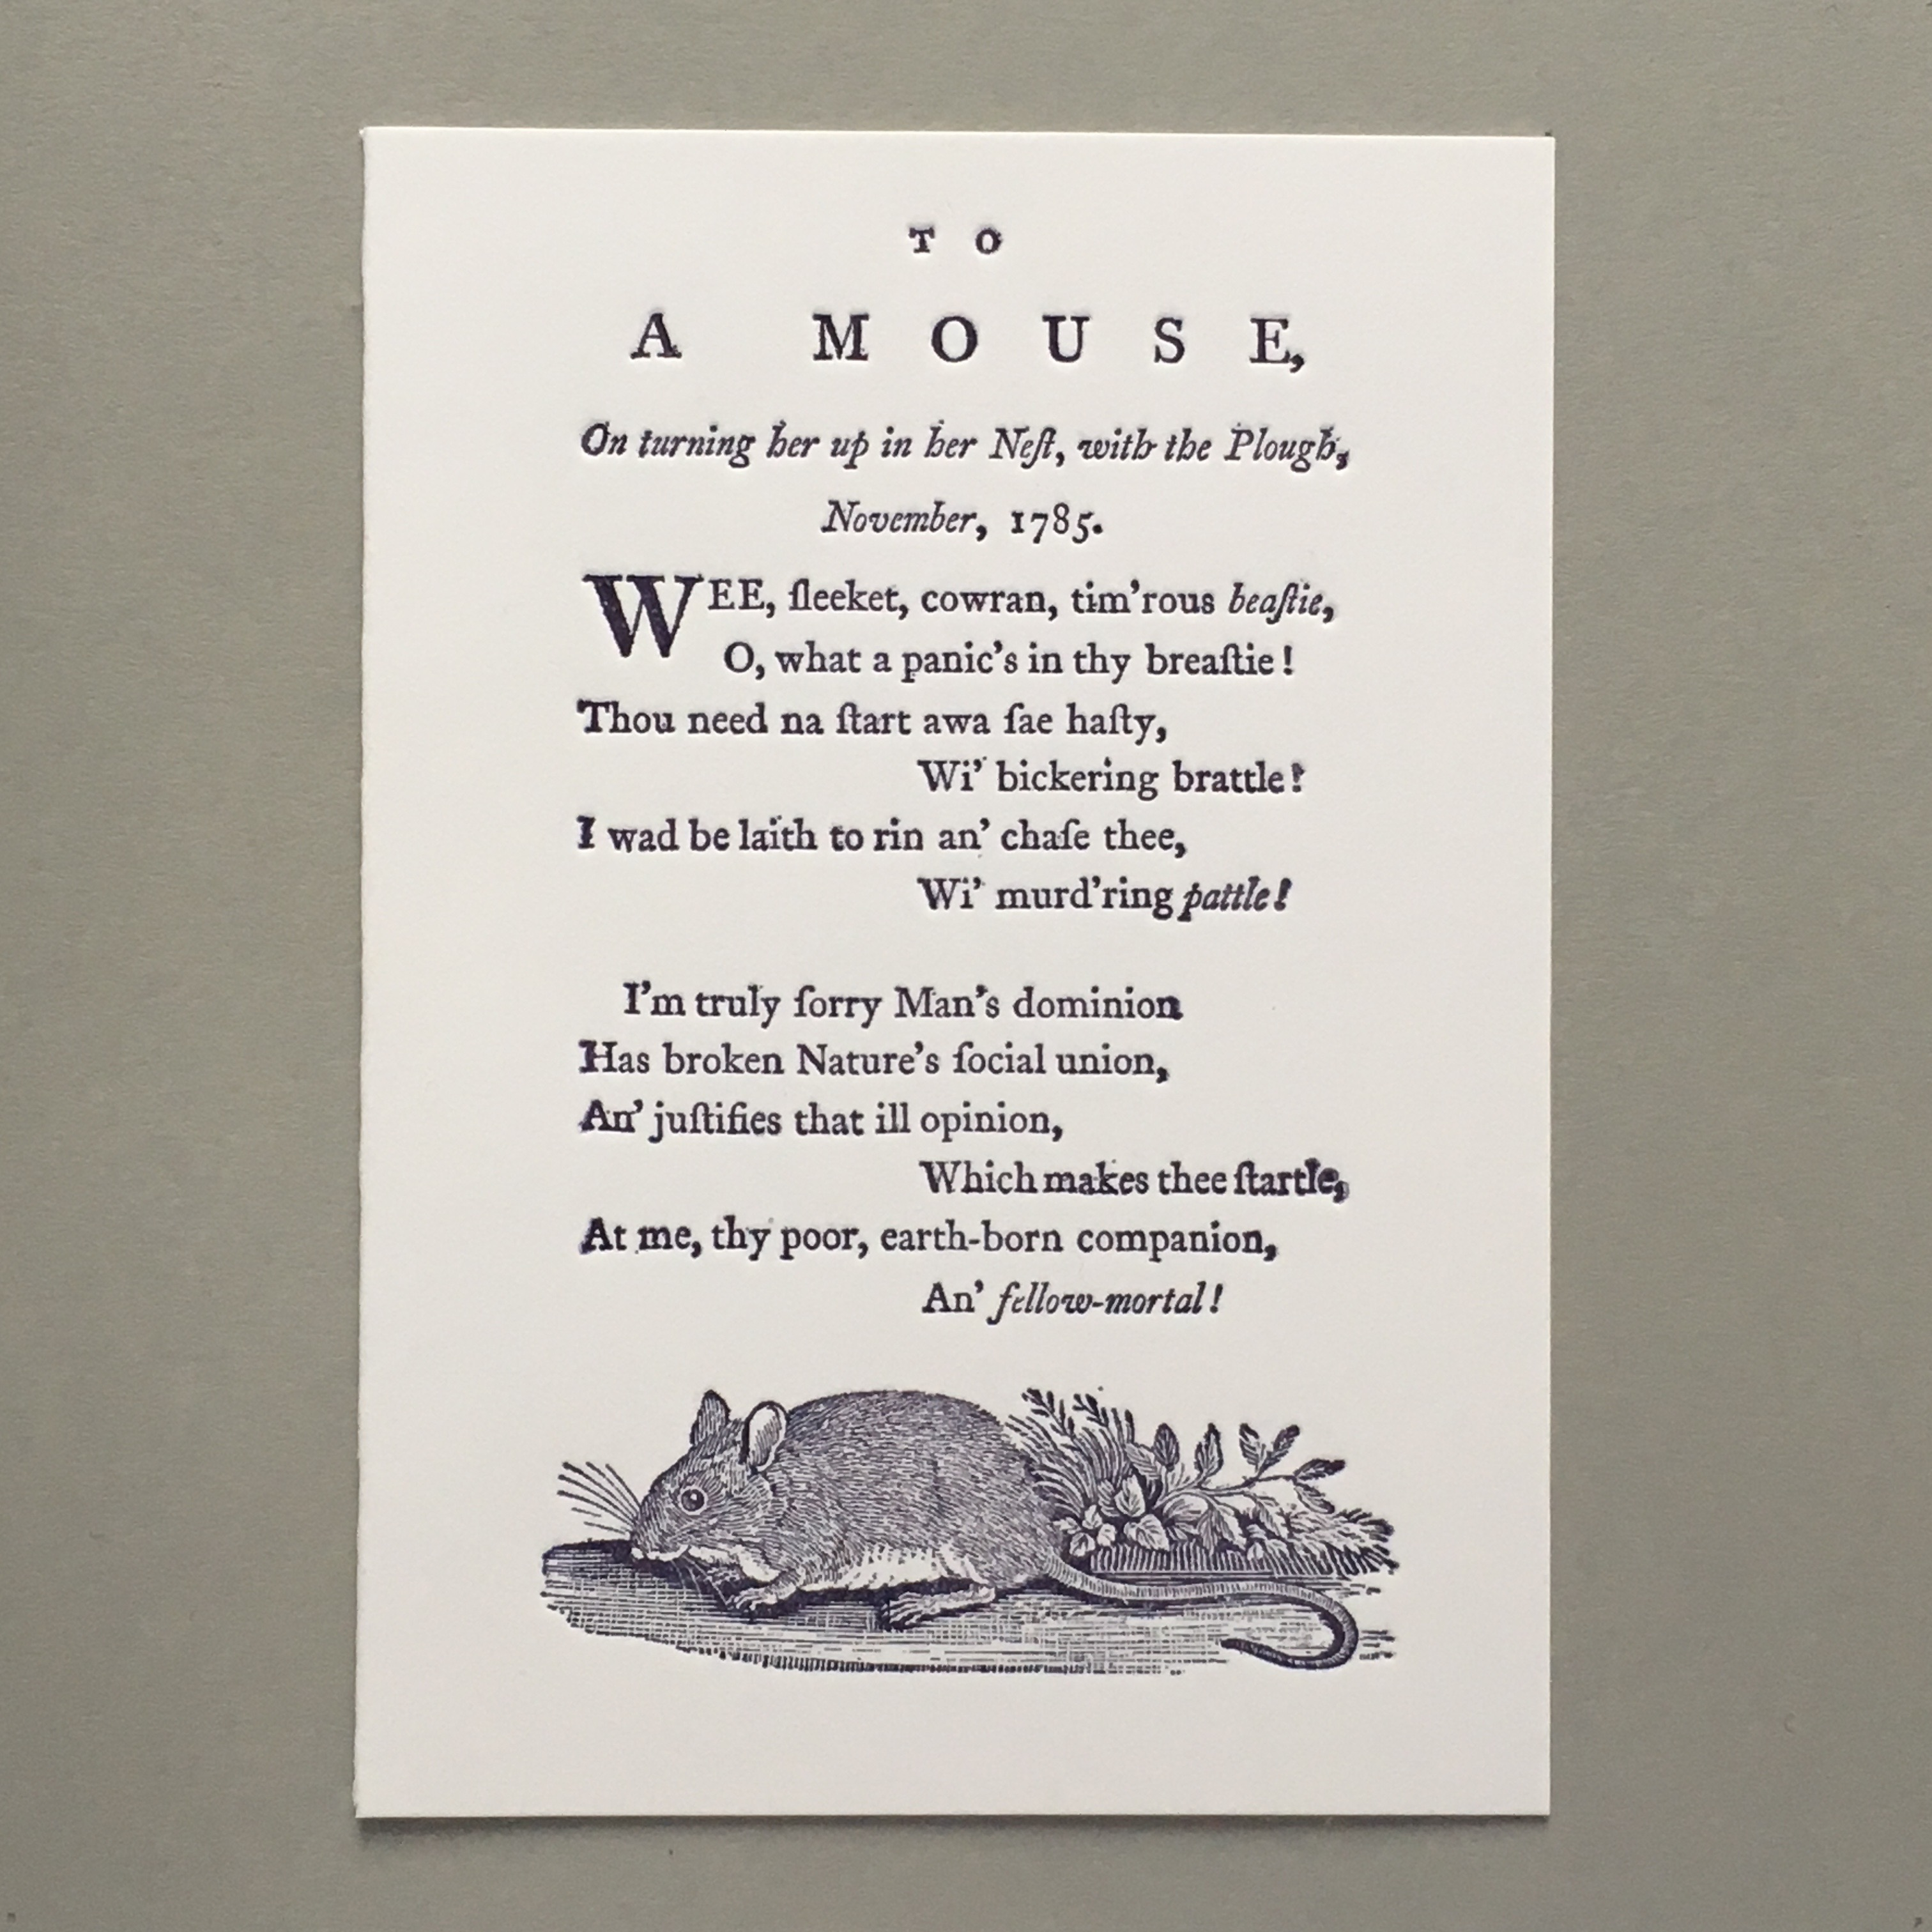 To a Mouse 'Poems, chiefly in the Scottish dialect' Robert Burns